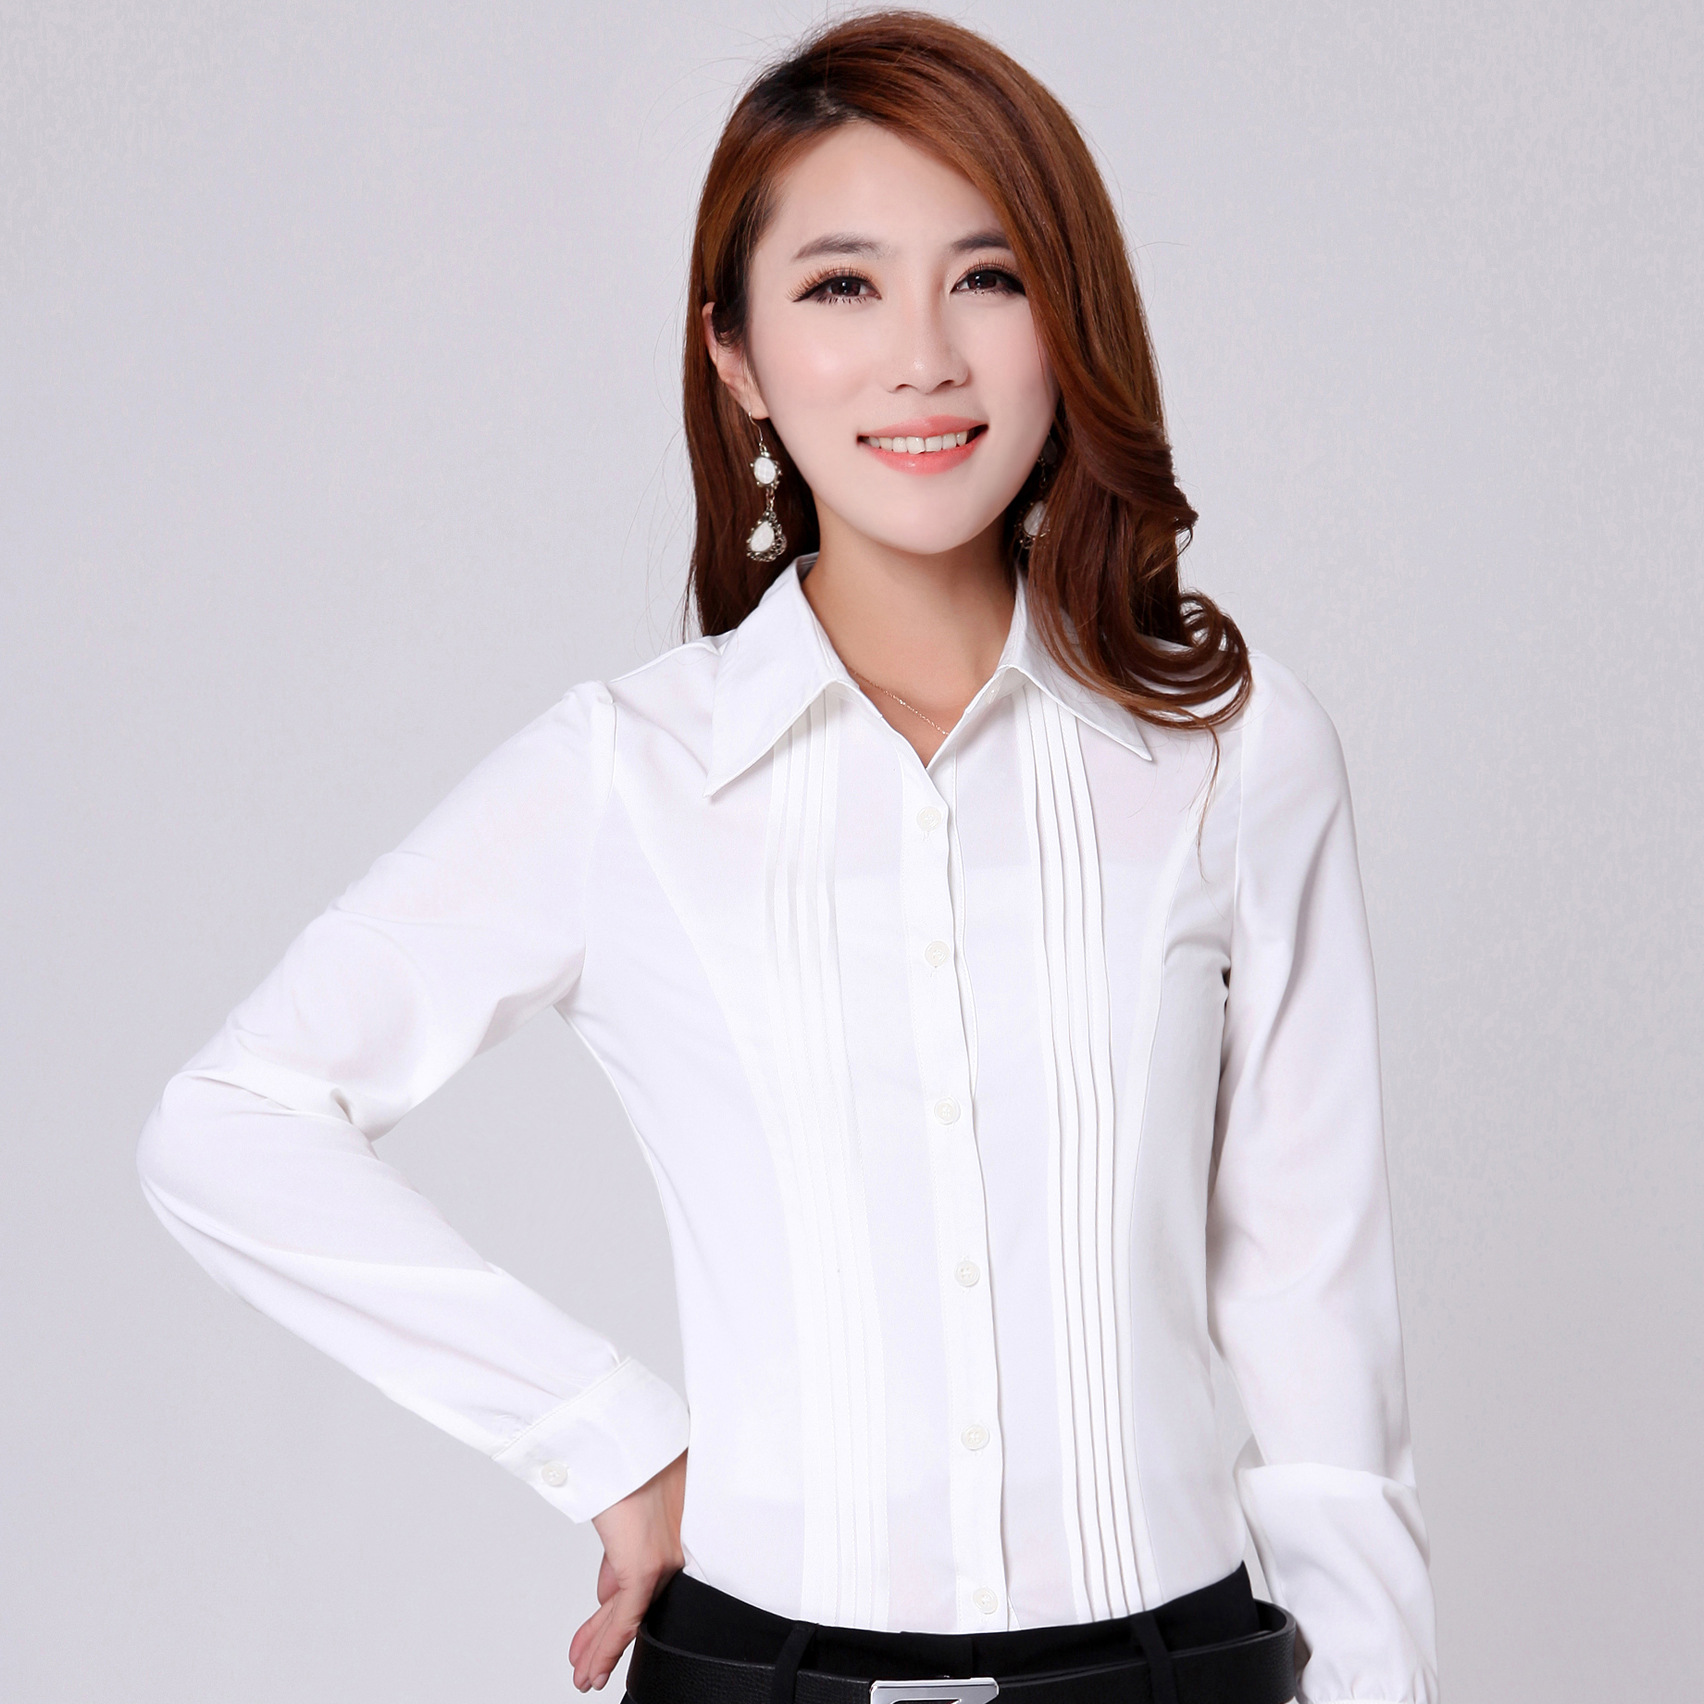 Buy Elebodystore Woman White Long Sleeve